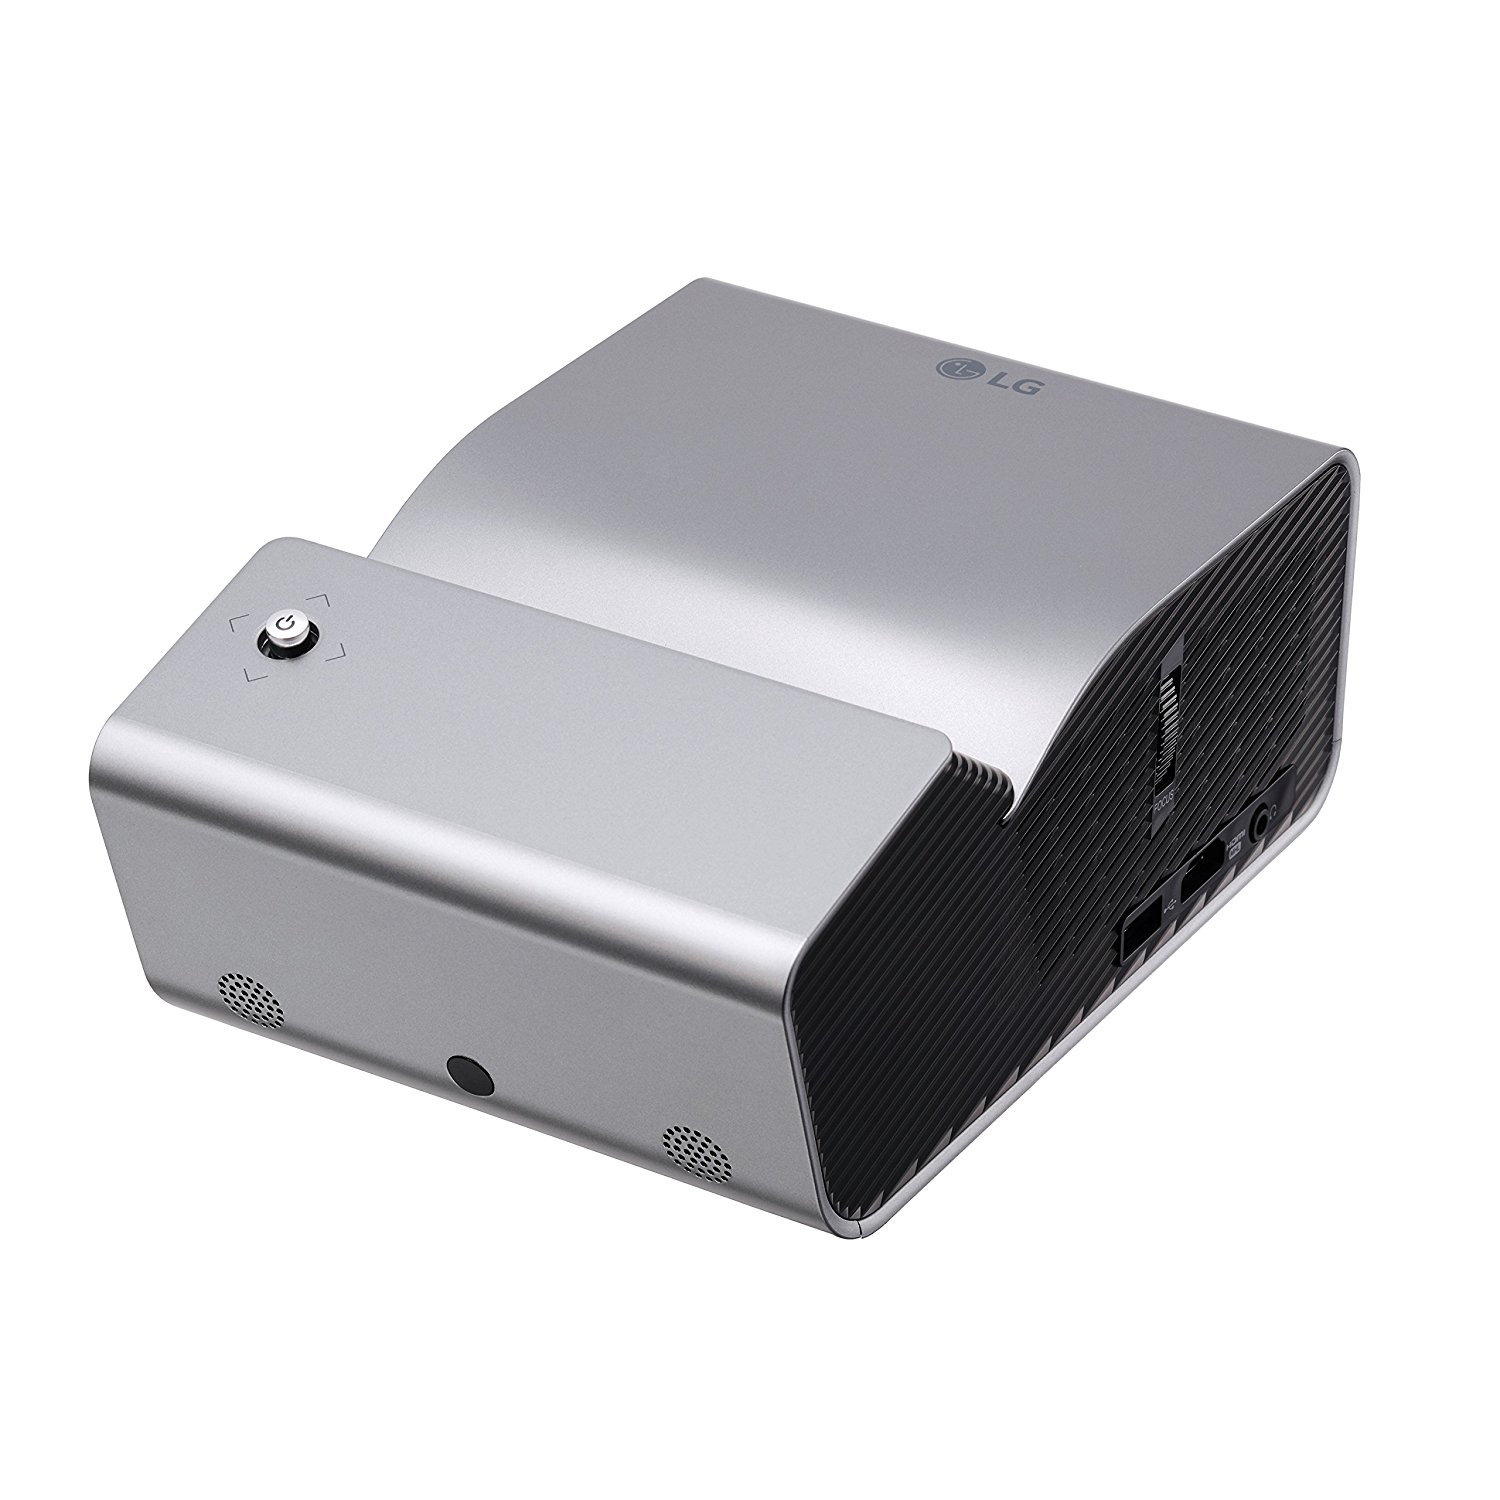 LG PH450UG Ultra Short Throw Projector with Built-in Battery